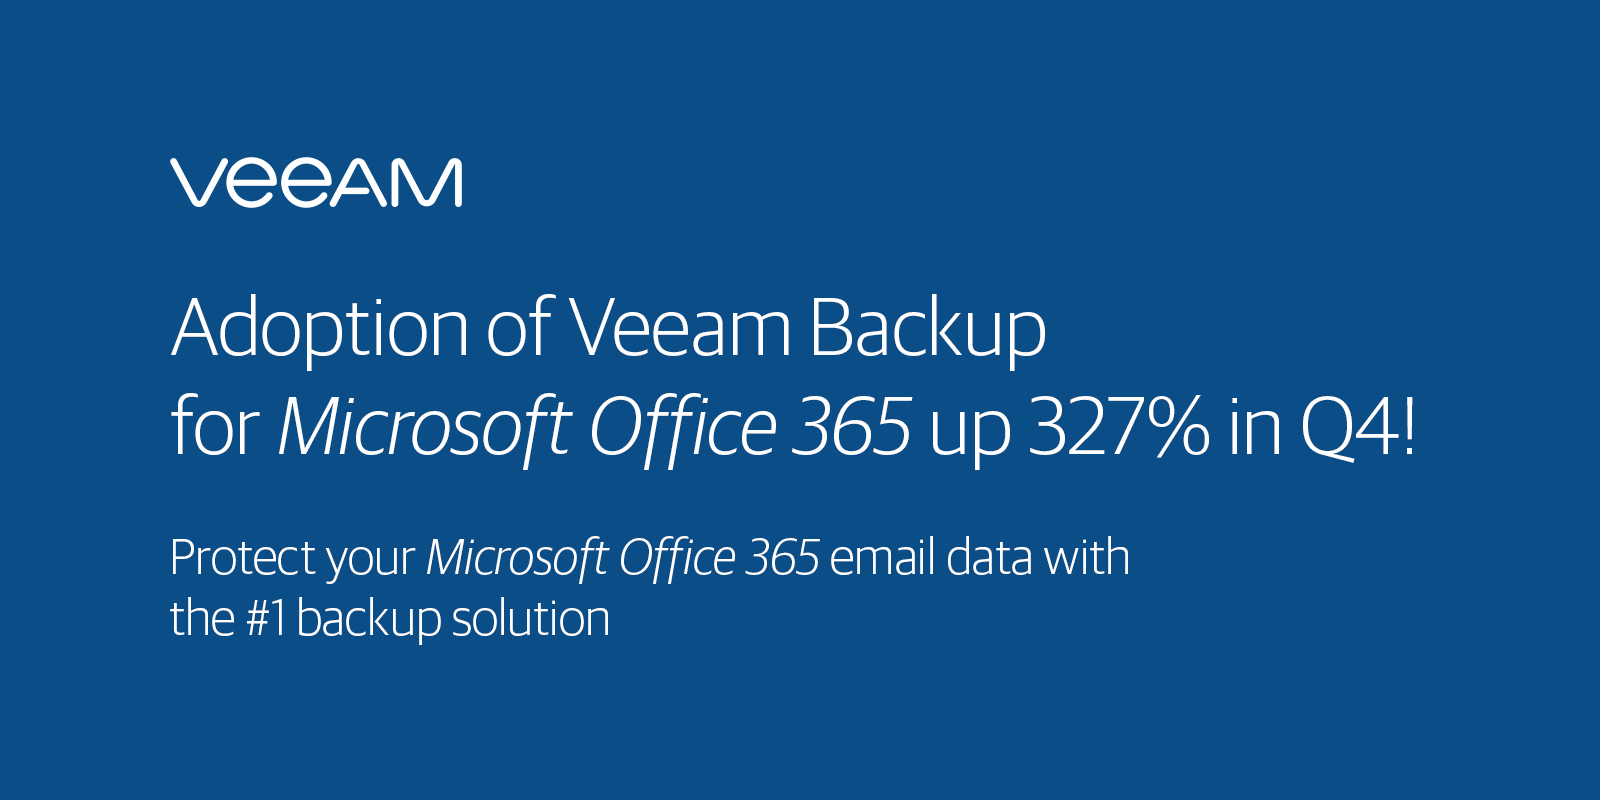 6 Reasons Why Office 365 Backup is Critical